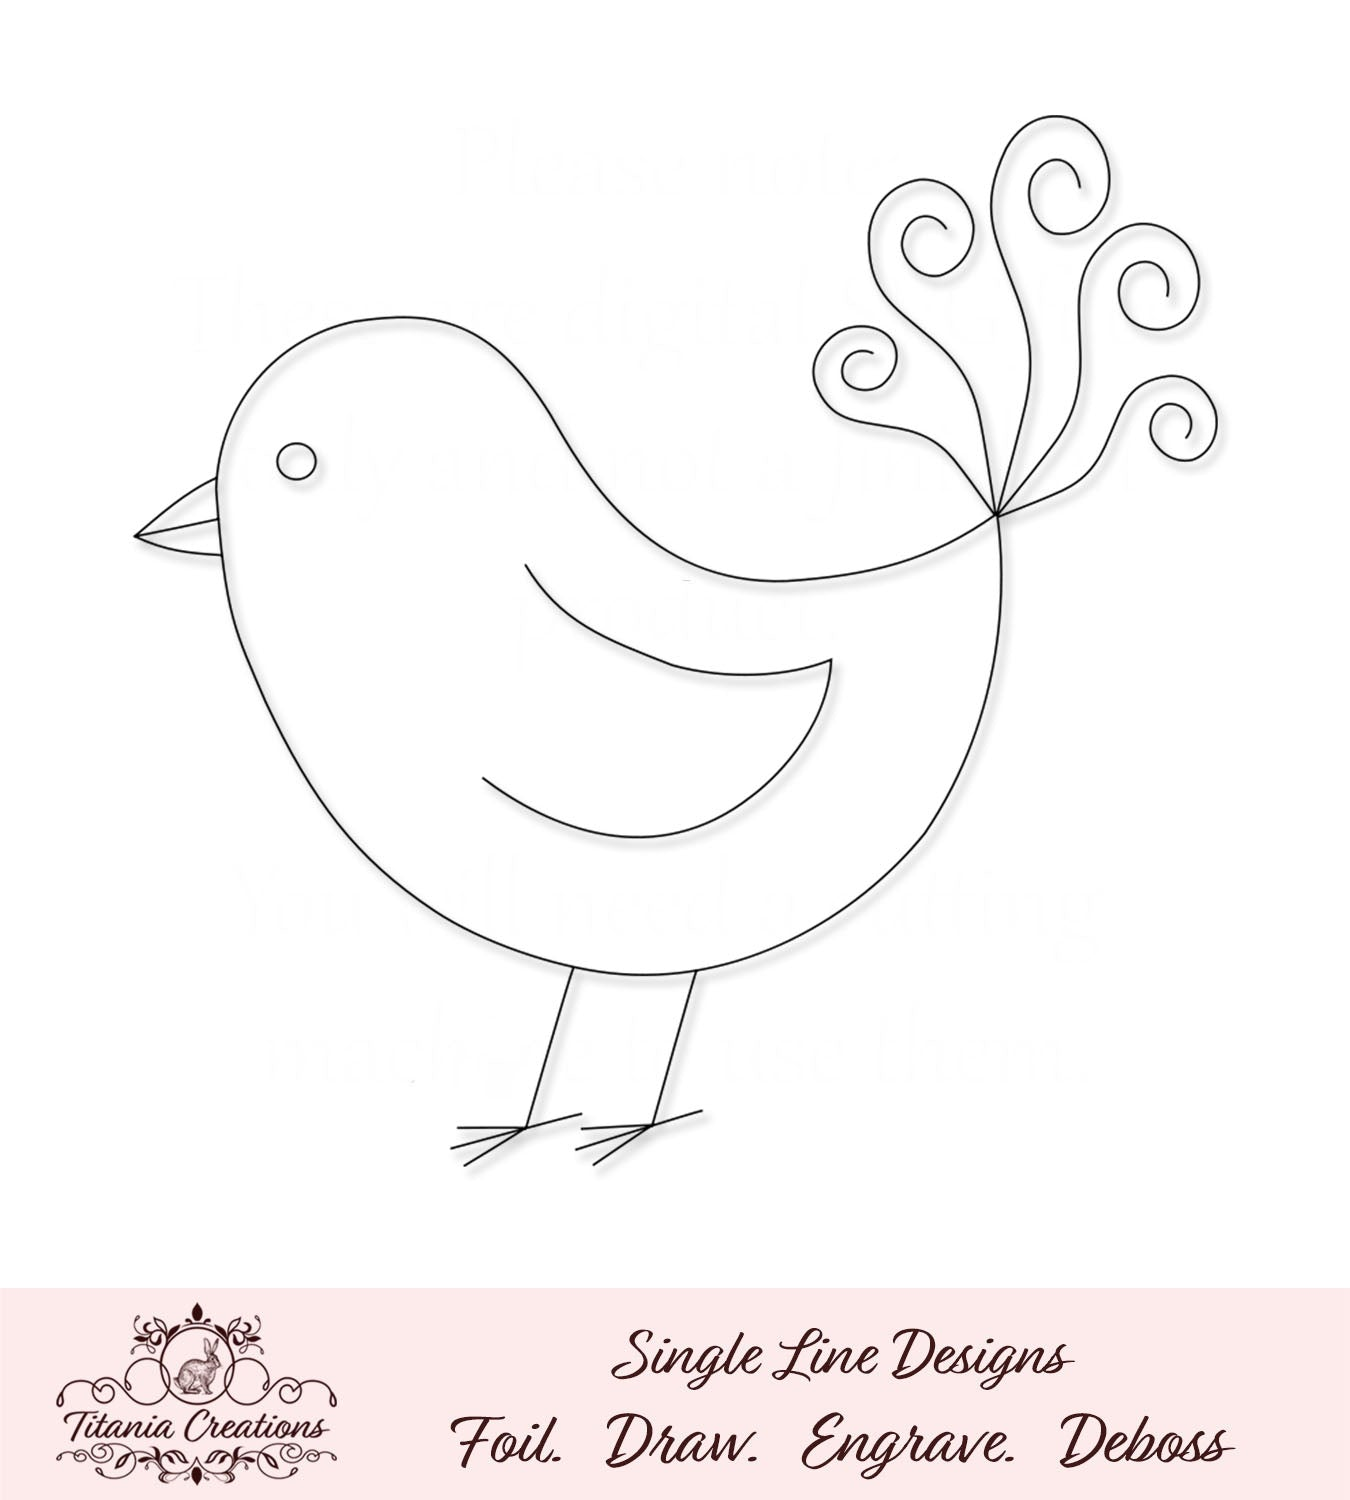 Single Line Fantasy Bird Foil Quill / Sketch SVG